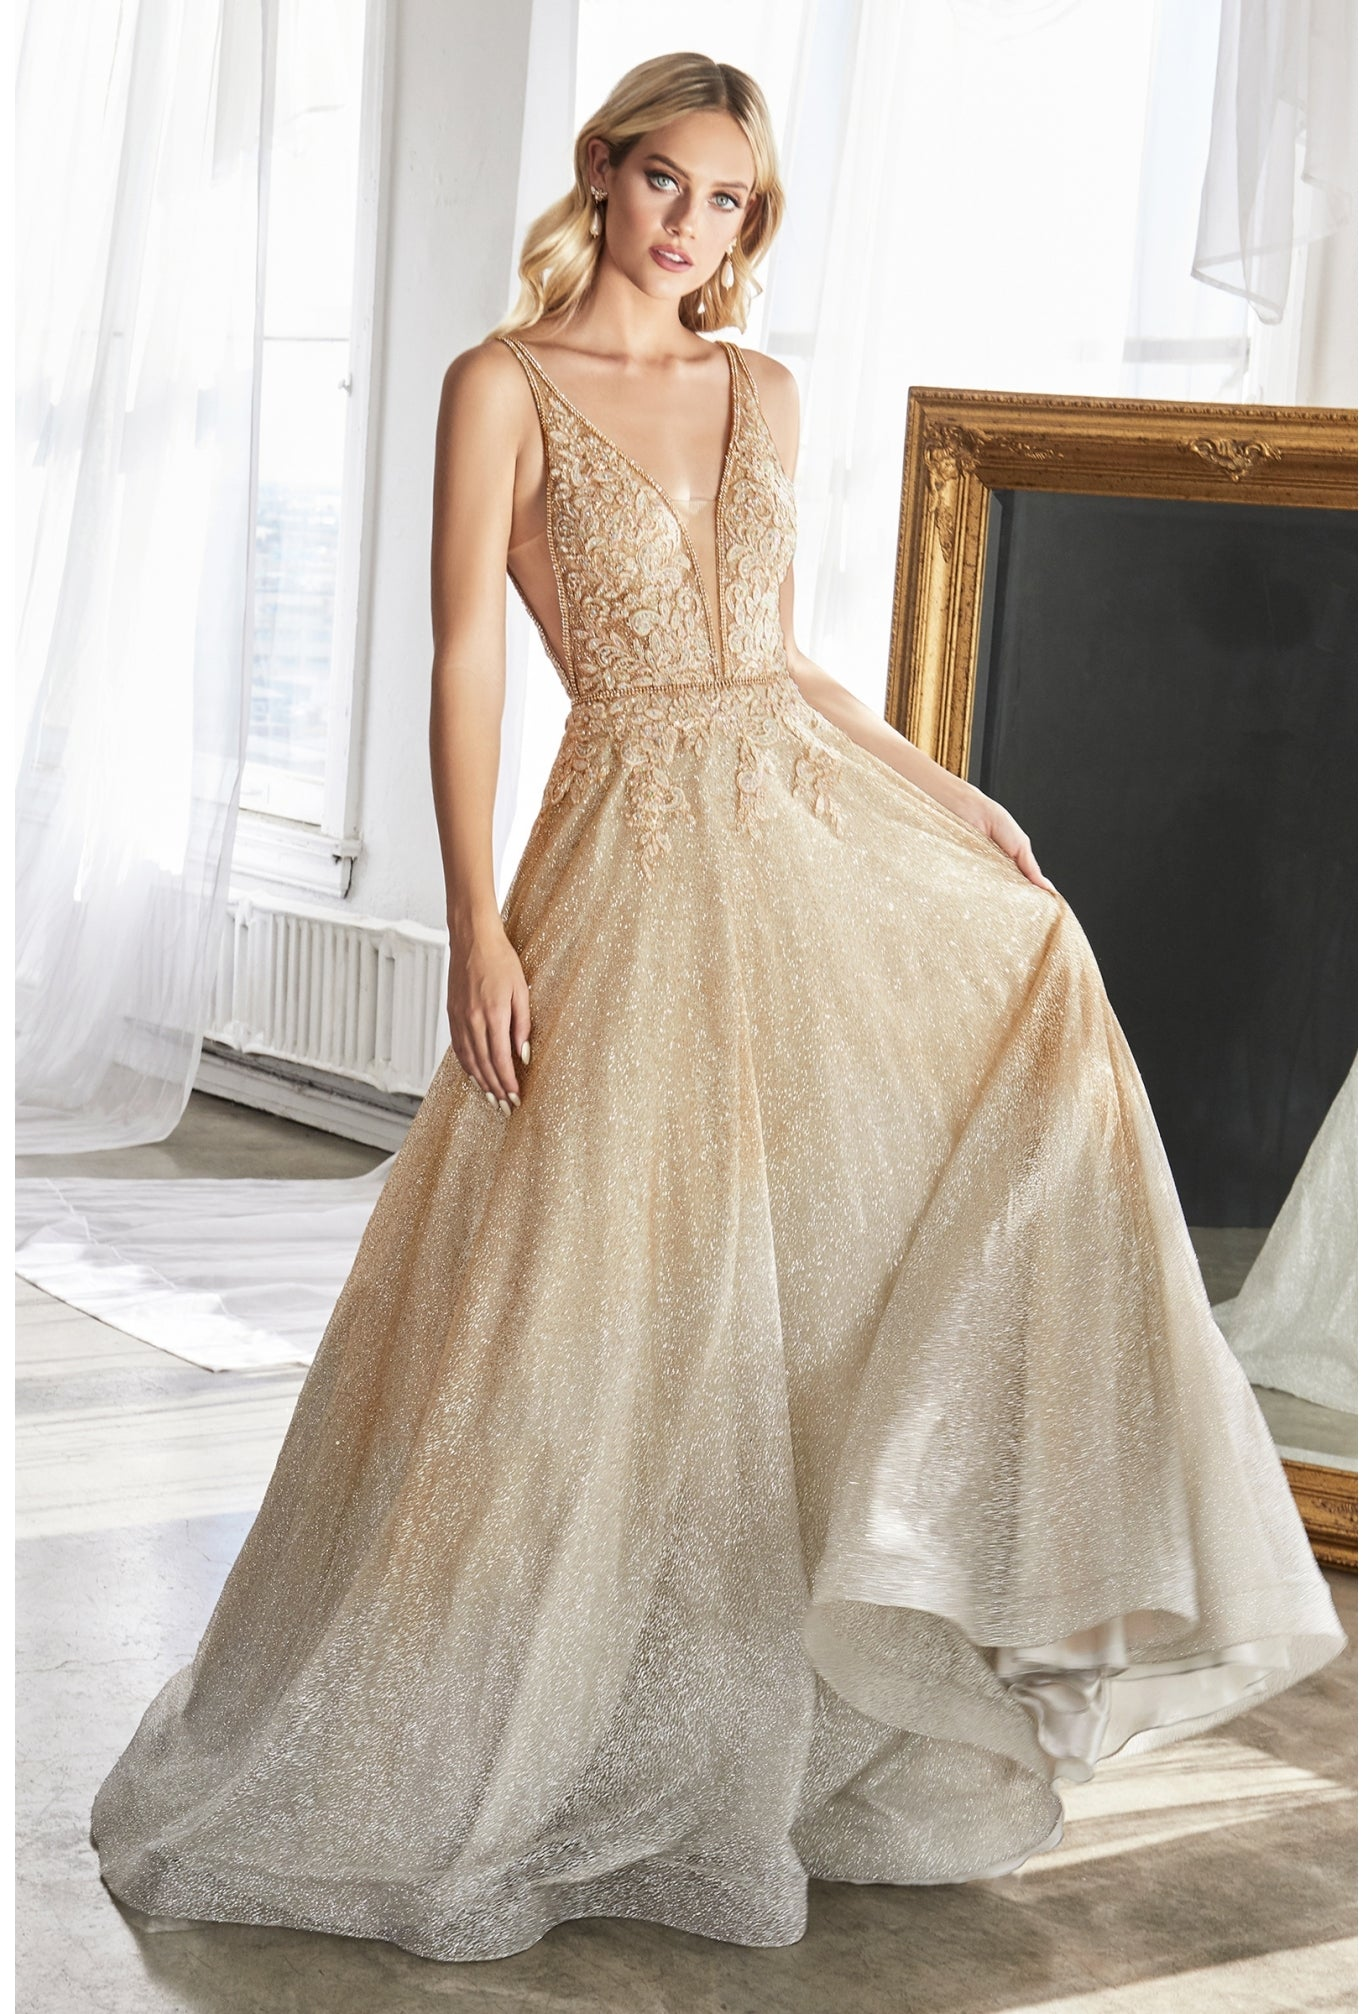 CD Blossom Gold Gown